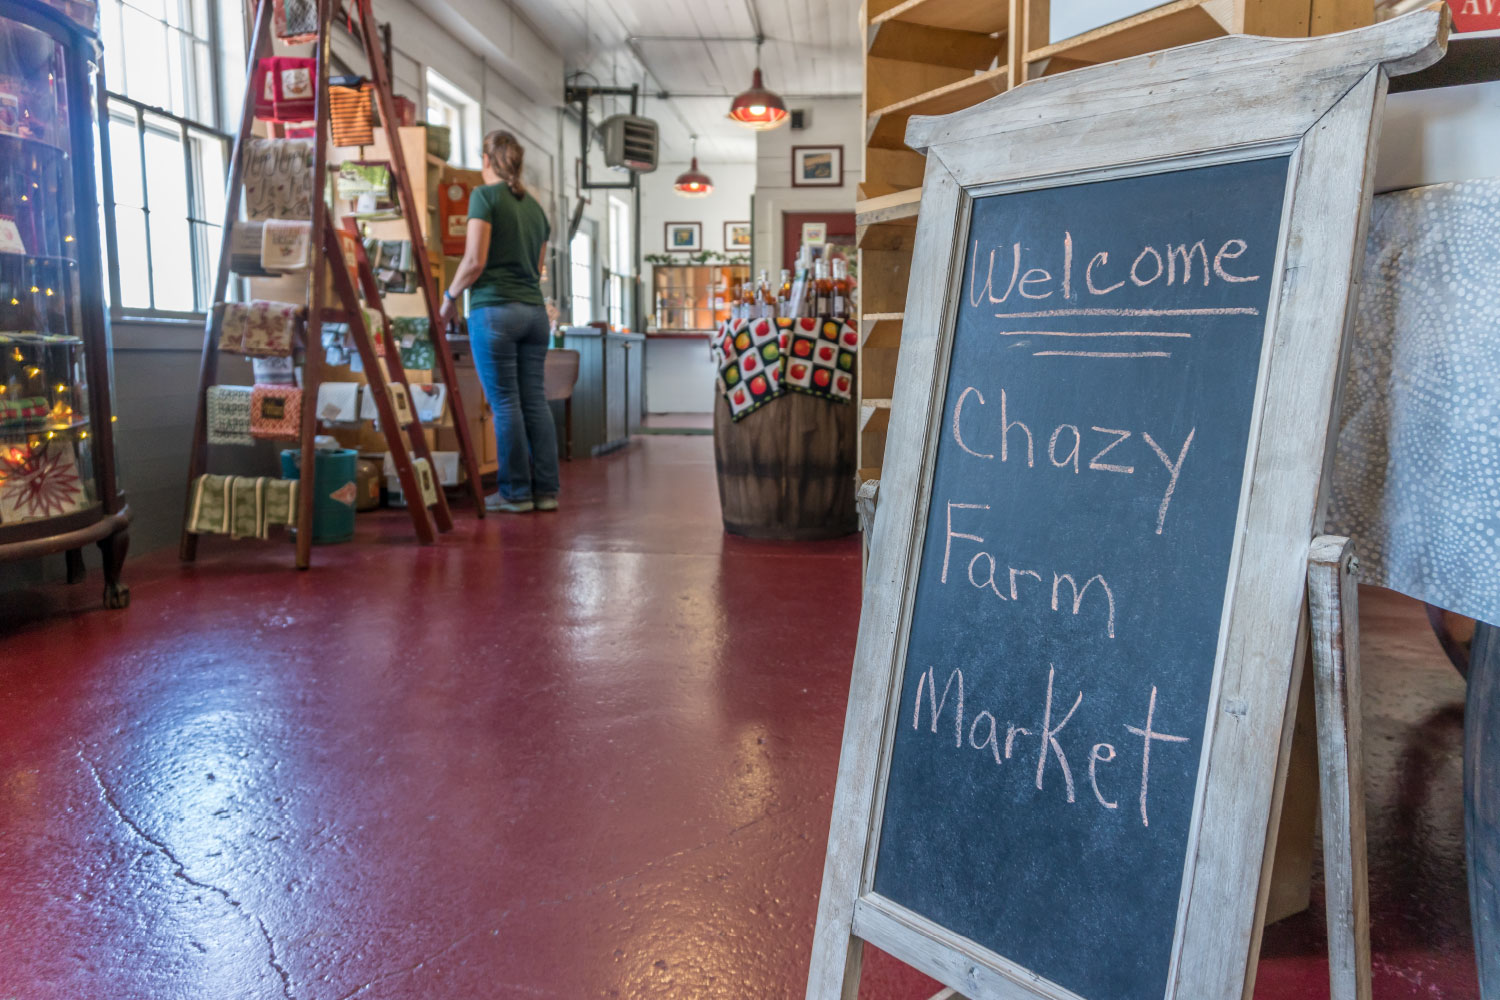 Chazy orchards store inside.